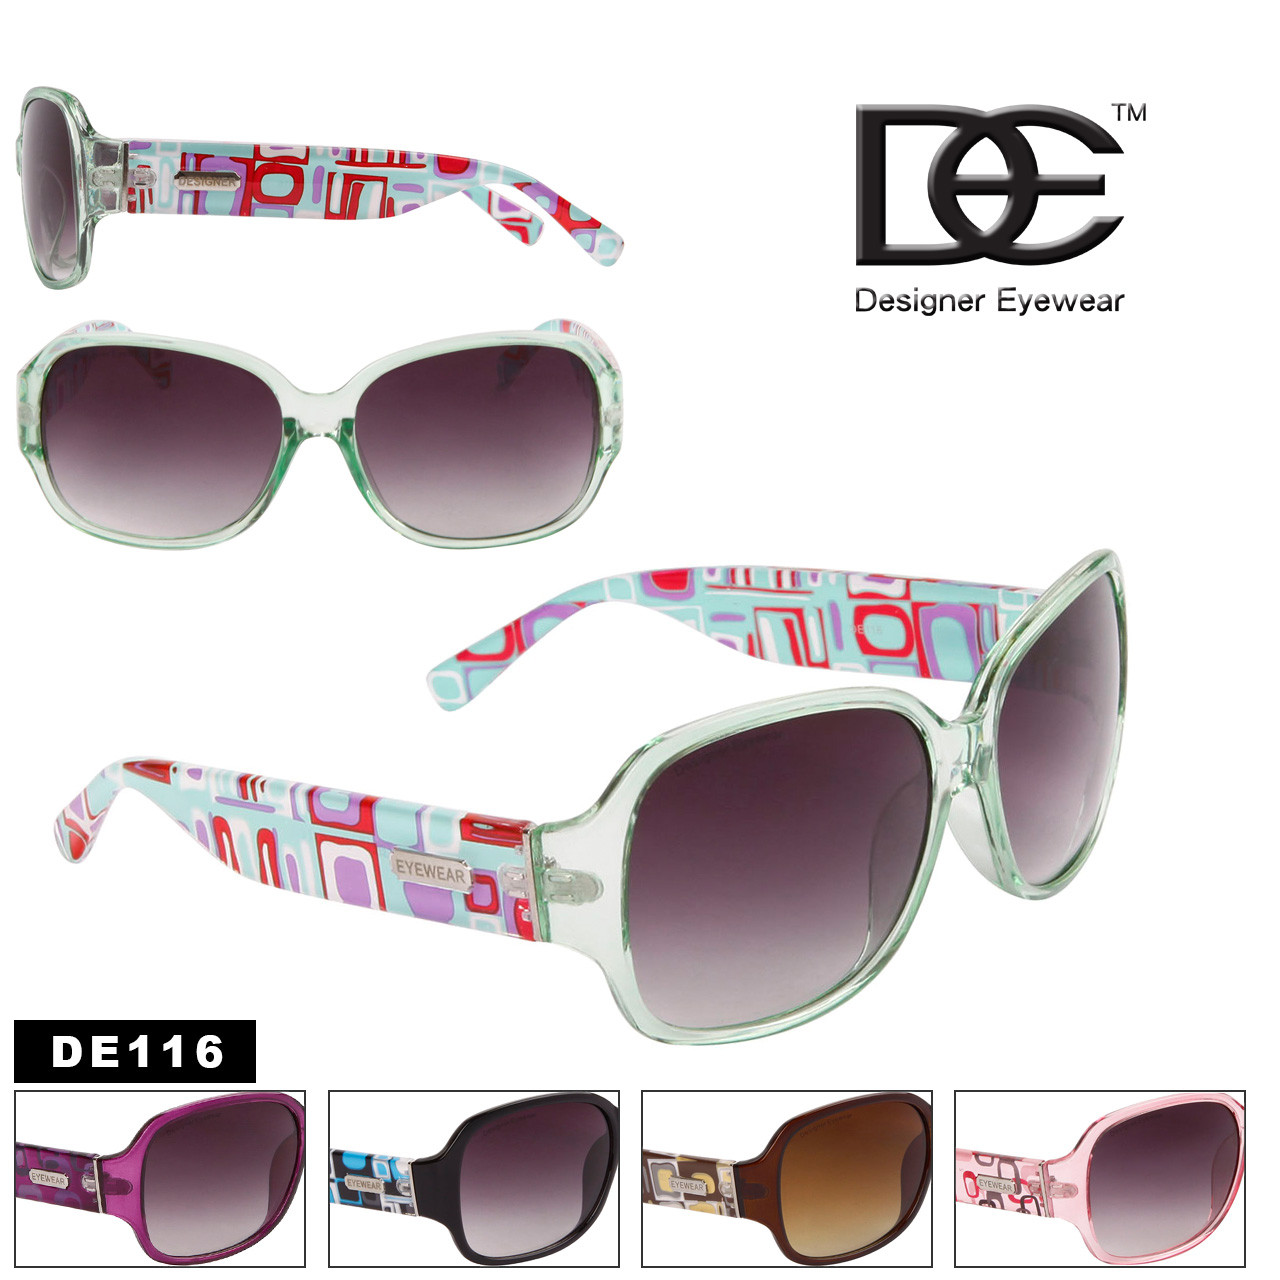 DE™ Abstract Temple Pattern Designer Sunglasses - Style DE116